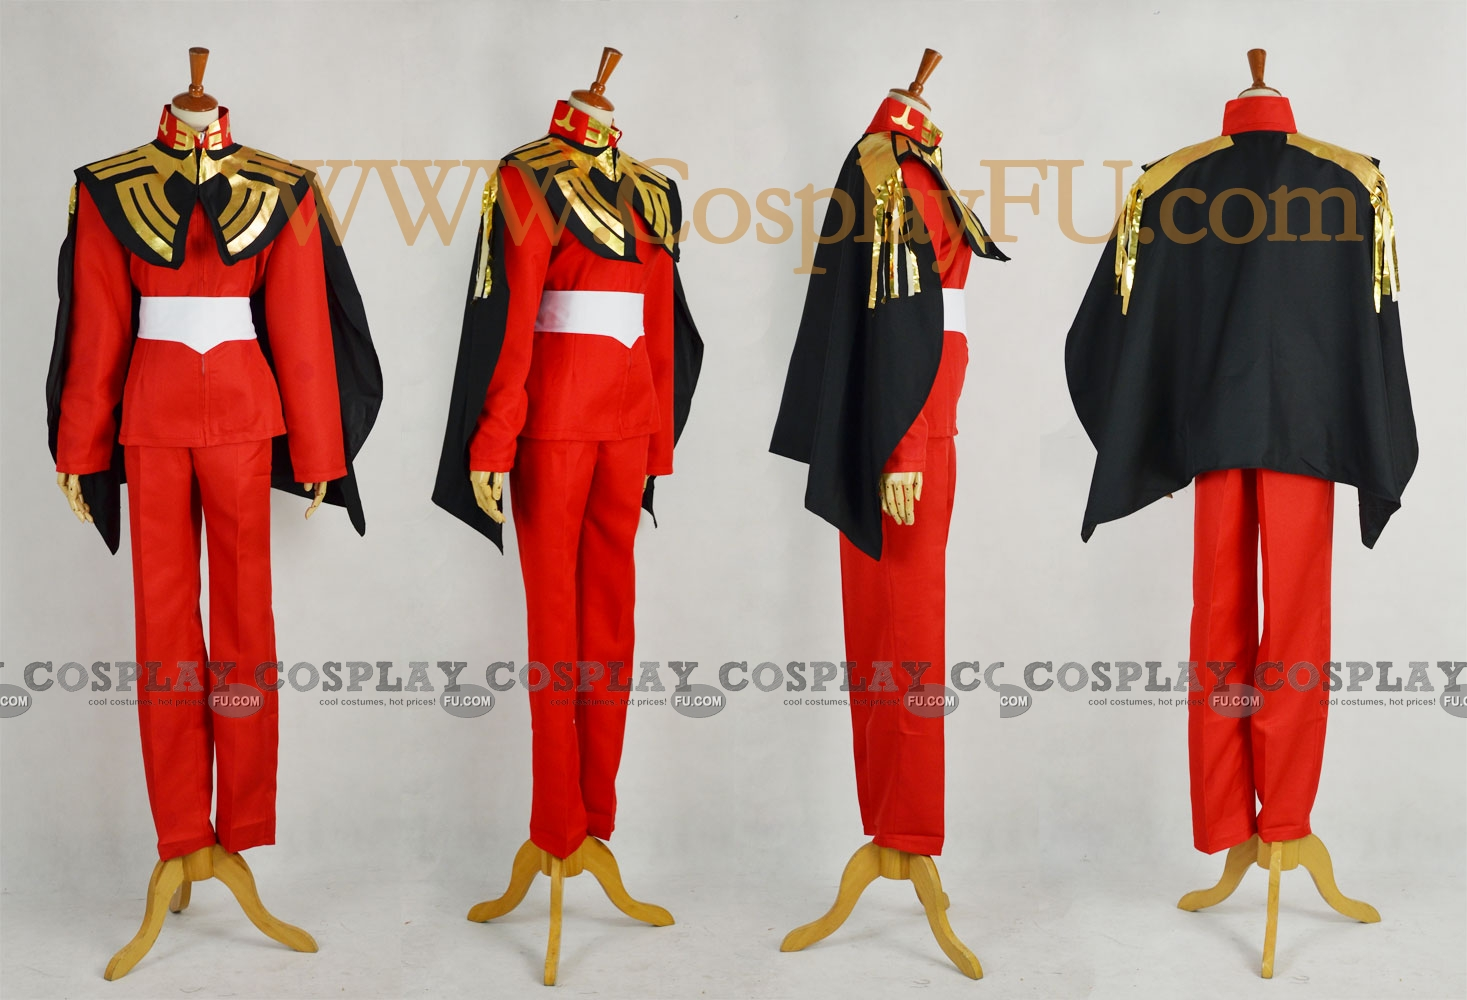 Char Cosplay Costume from Mobile Suit Gundam